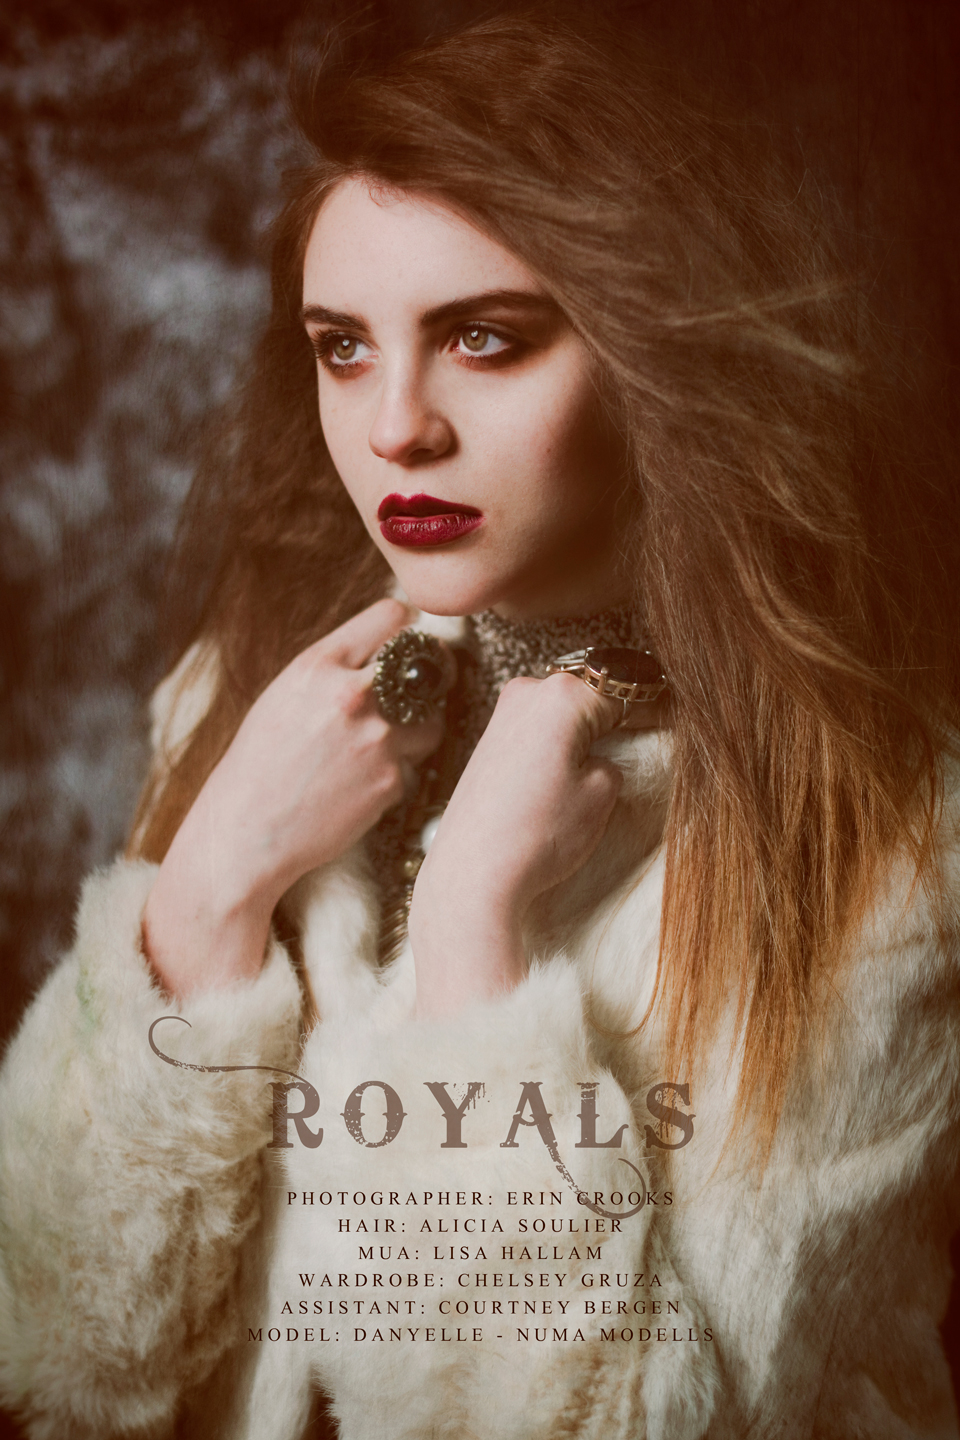 ROYALS-COVER-960px-wide.jpg